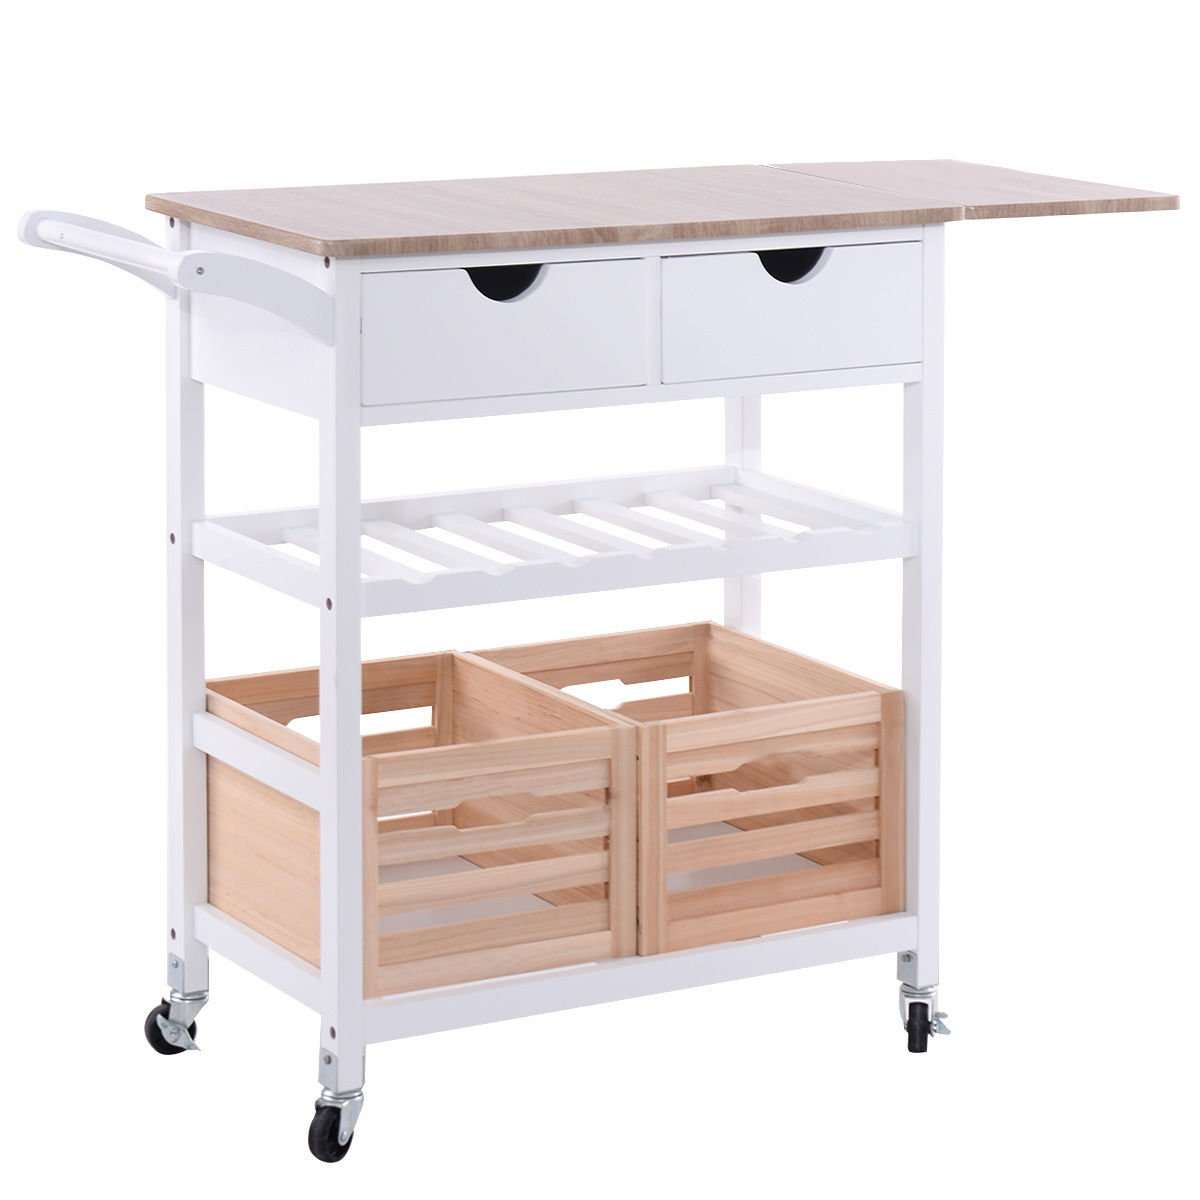 Amazon.com   Costzon Kitchen Trolley Island Cart Dining Storage With  Drawers Basket Wine Rack   Kitchen Islands U0026 Carts